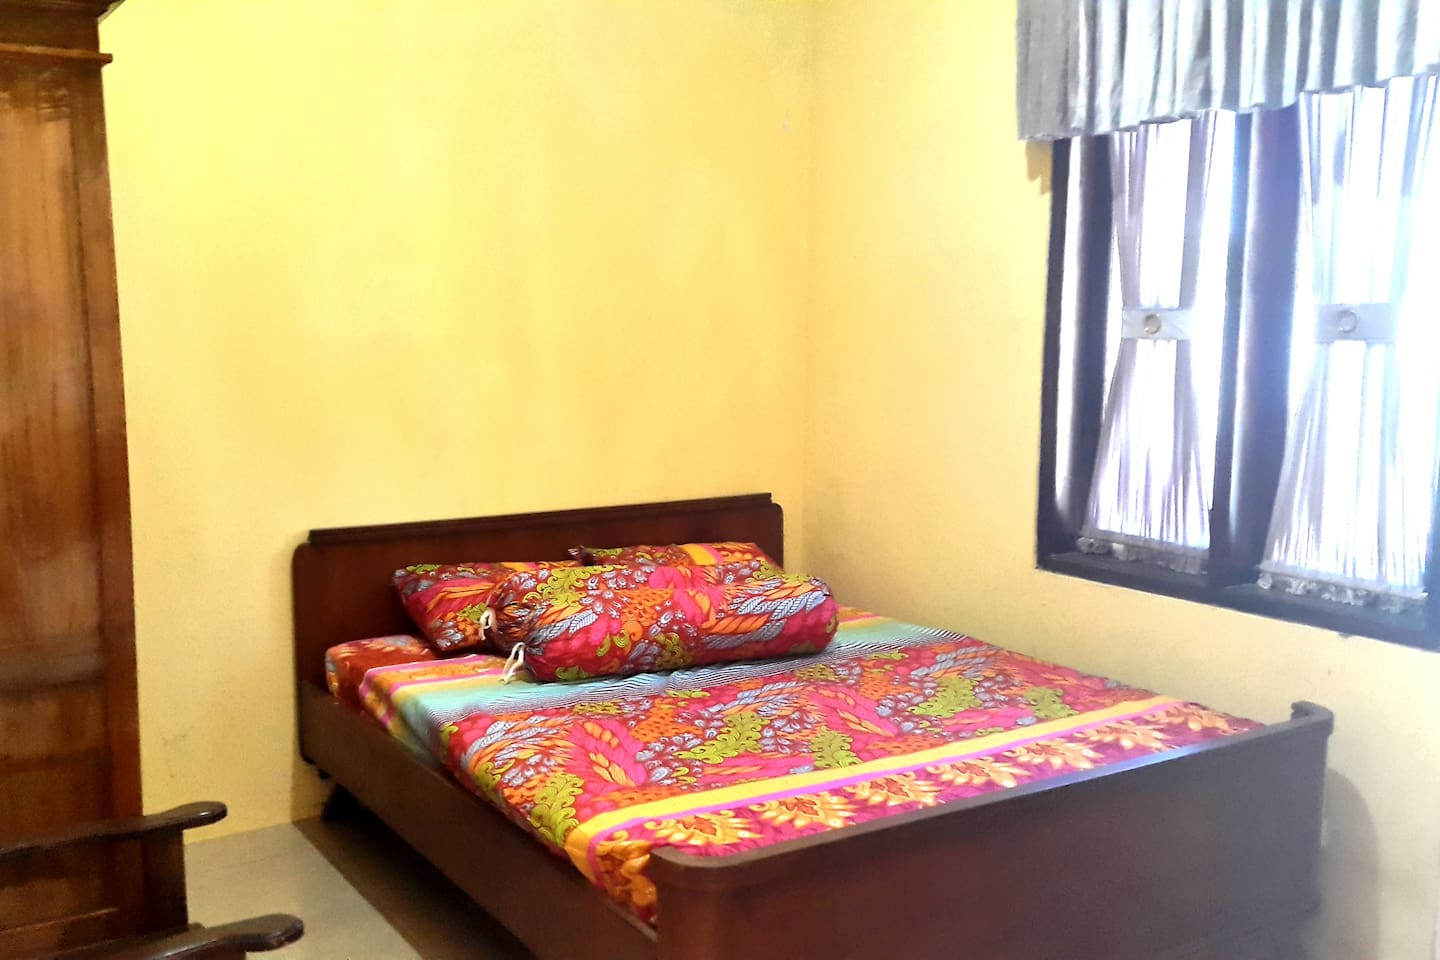 Clean and comfortable bedroom for 2 adult [+1 child] - 1 Bed [King Size]  - Air Conditioning in every room  - Chair  - Wardrobe